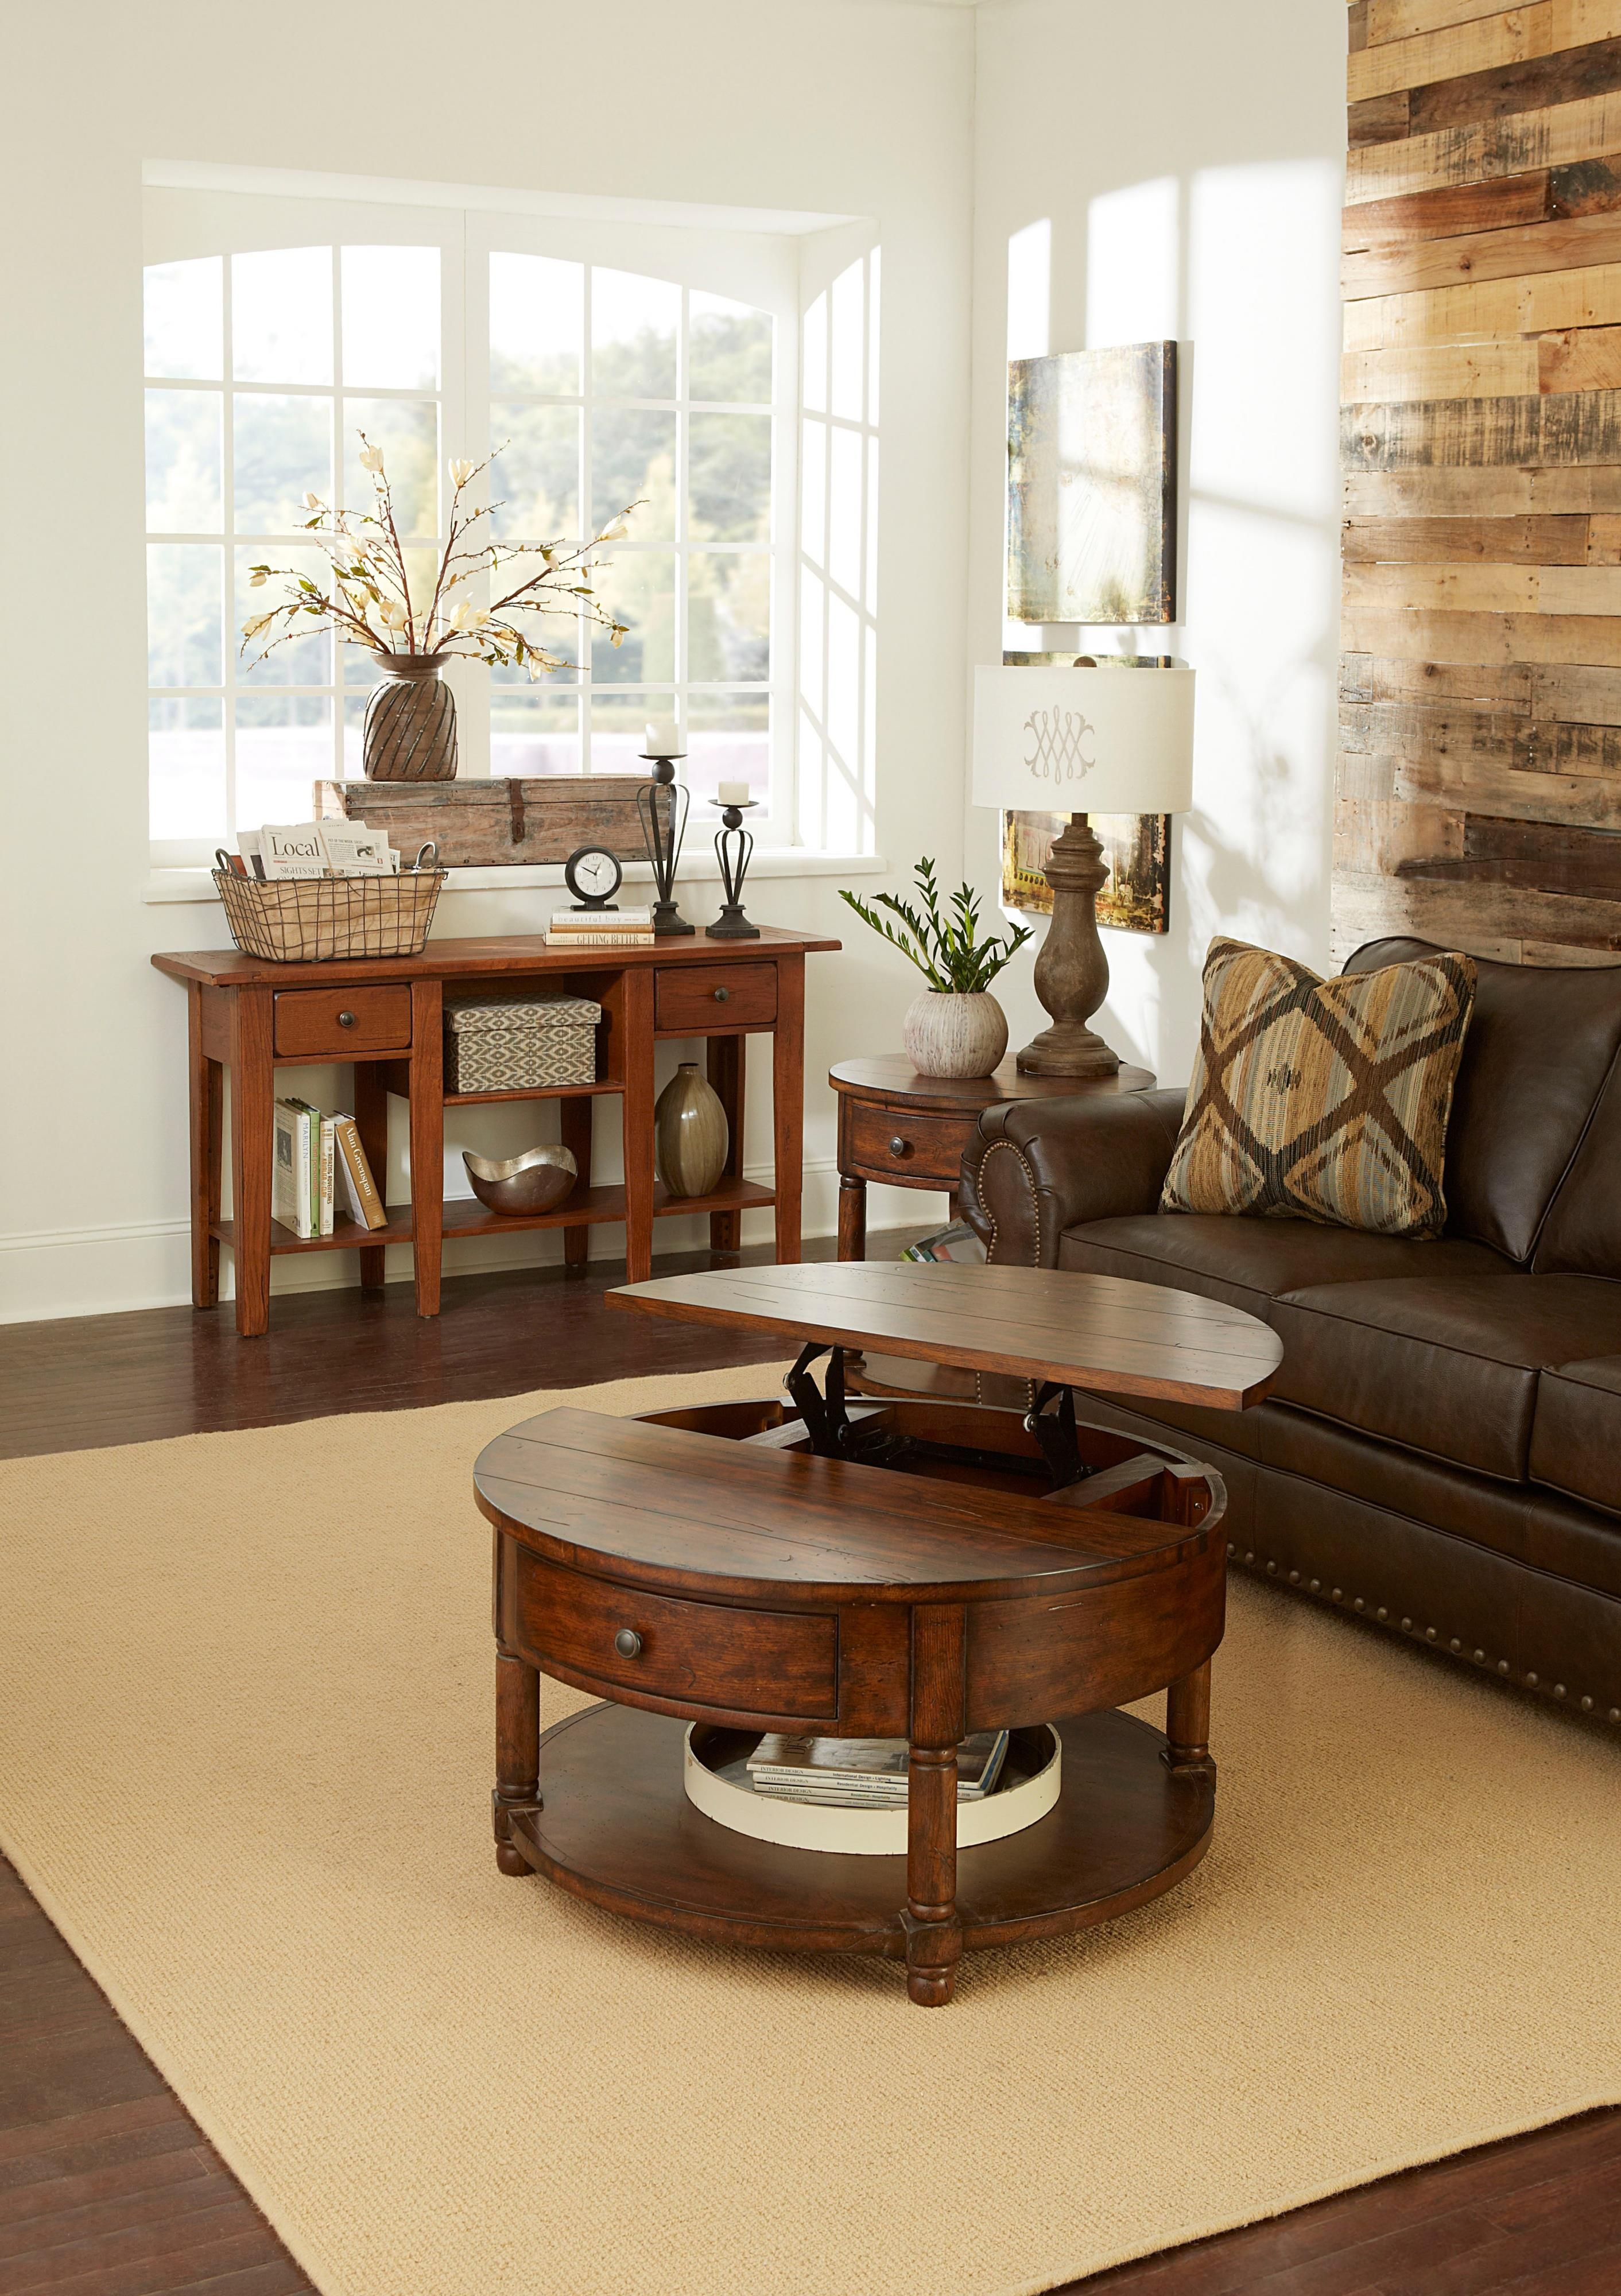 Attic Heirlooms Round Lift Top Cocktail Table With Shelf By Broyhill Furniture At Baer S Furniture Broyhill Furniture Wooden Sofa Set Furniture [ 4000 x 2824 Pixel ]